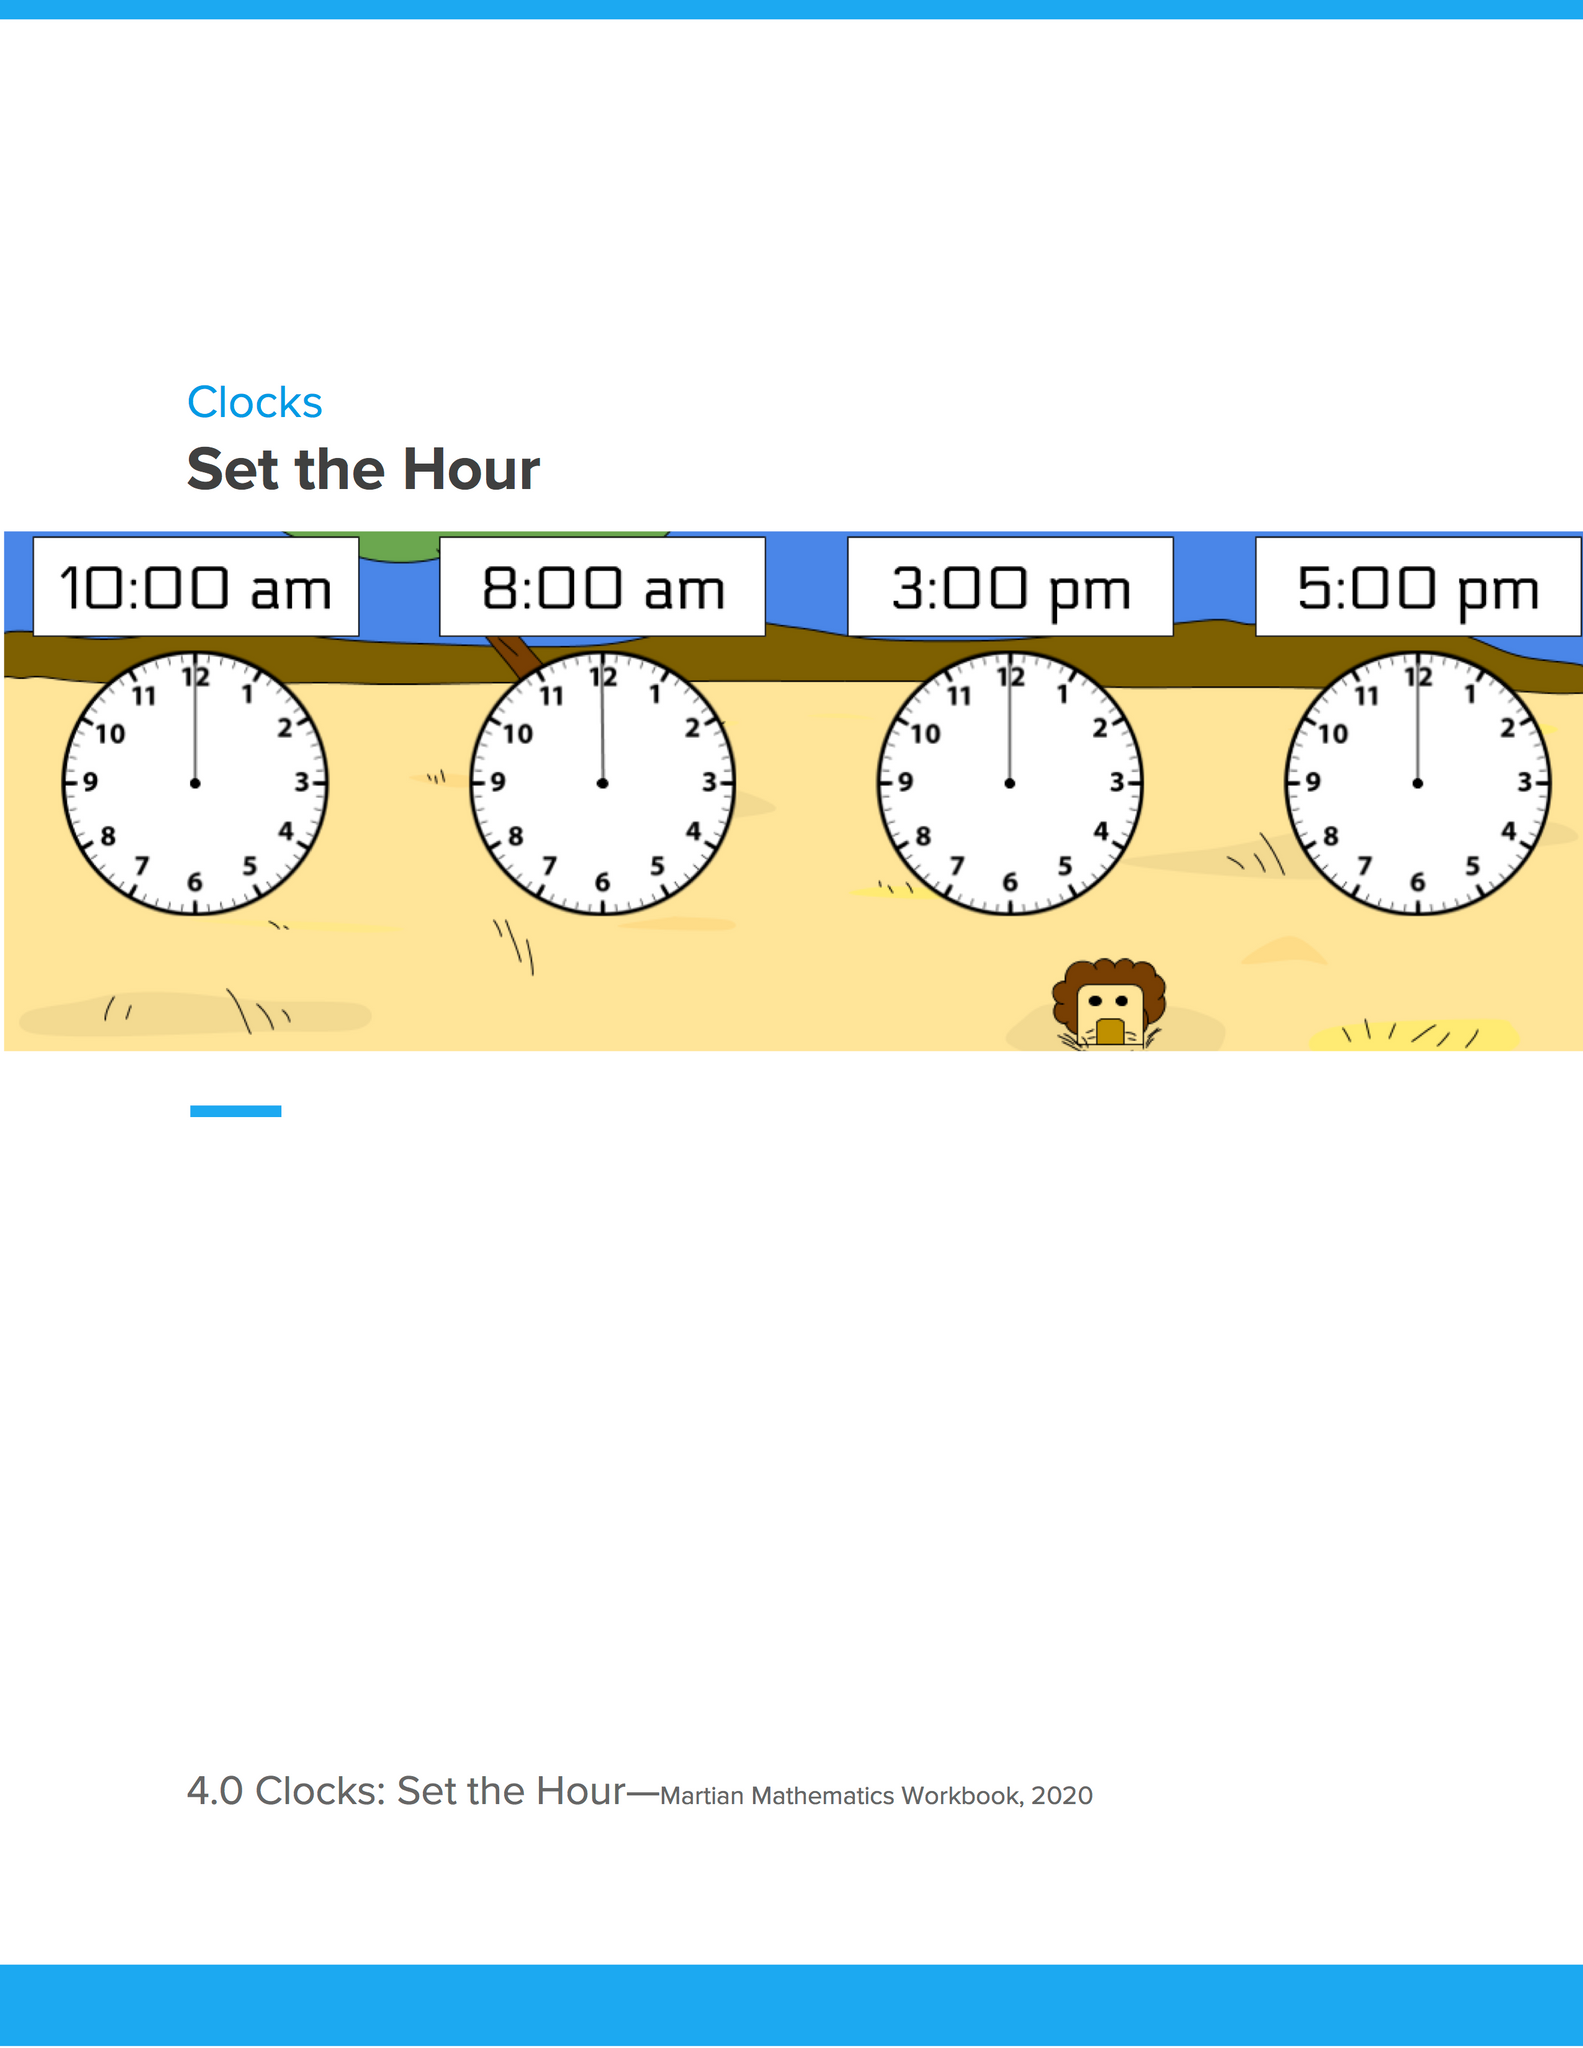 Clocks: Set the Hour